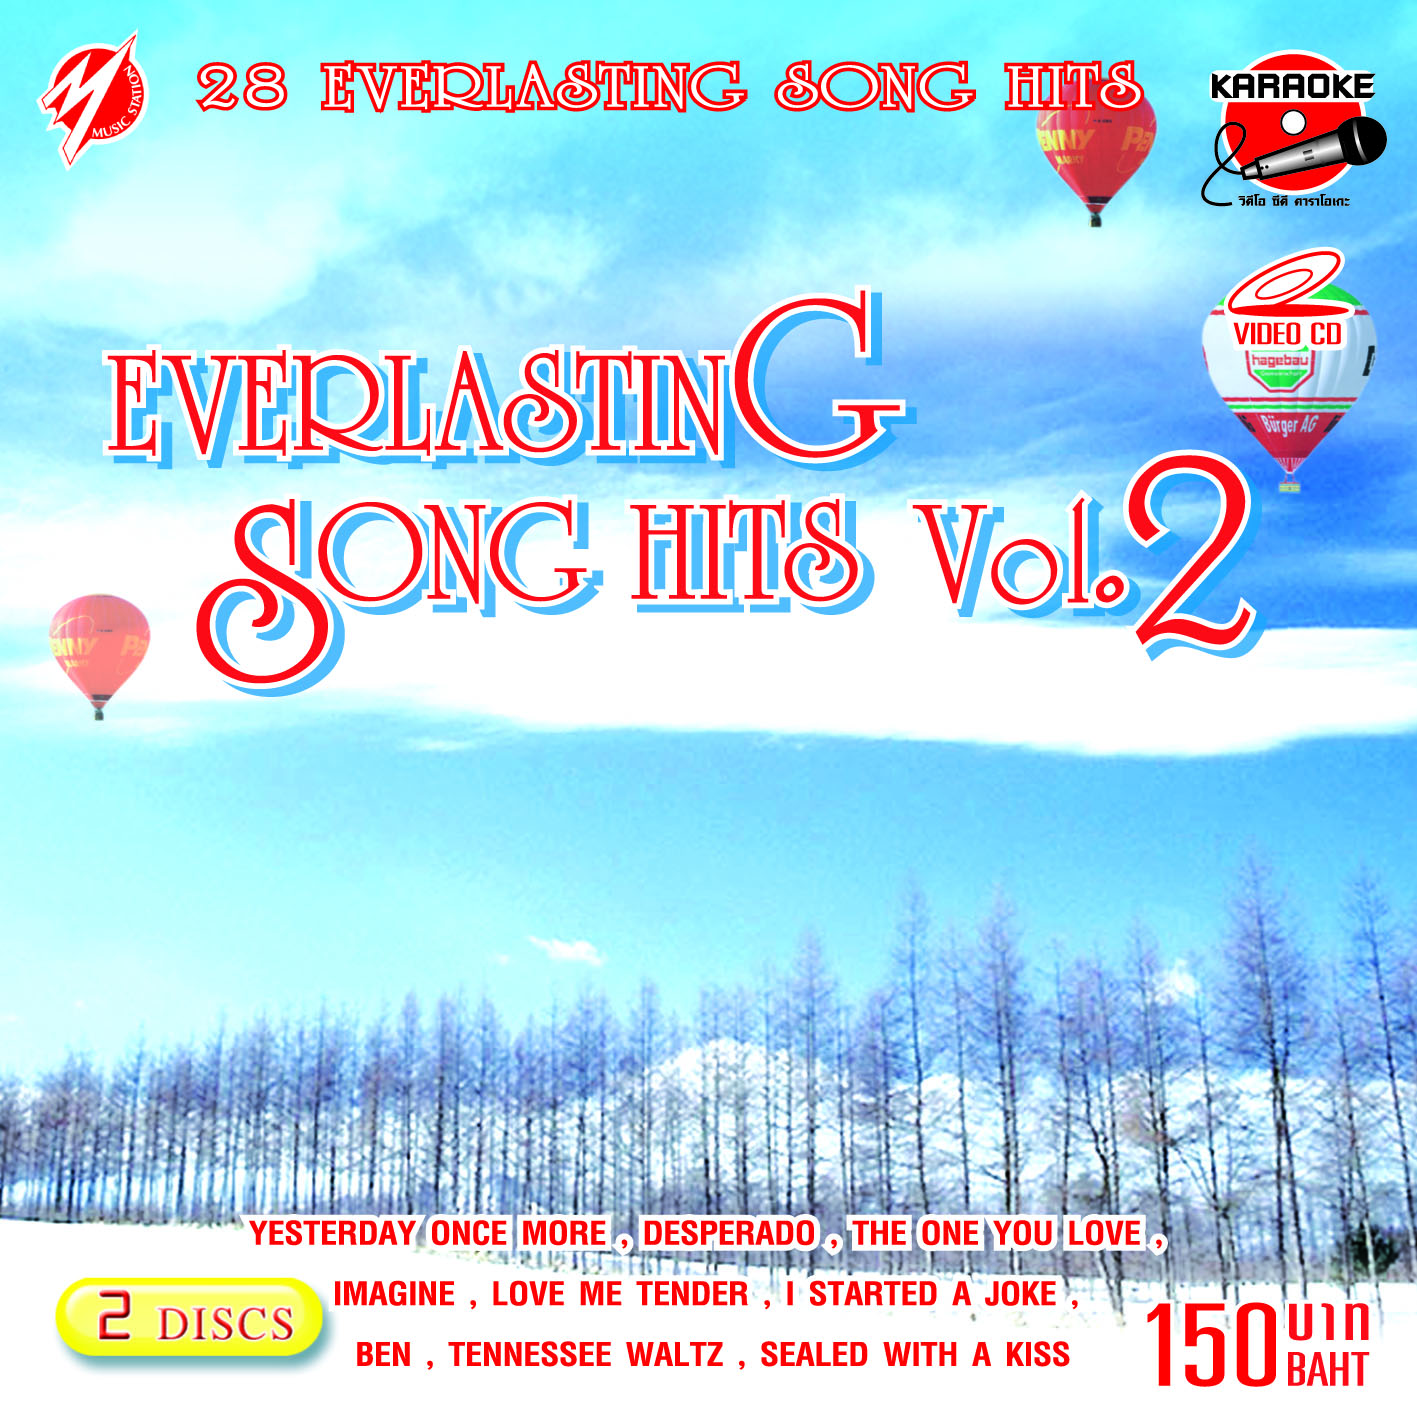 THE EVERLASTING SONG HITS 2